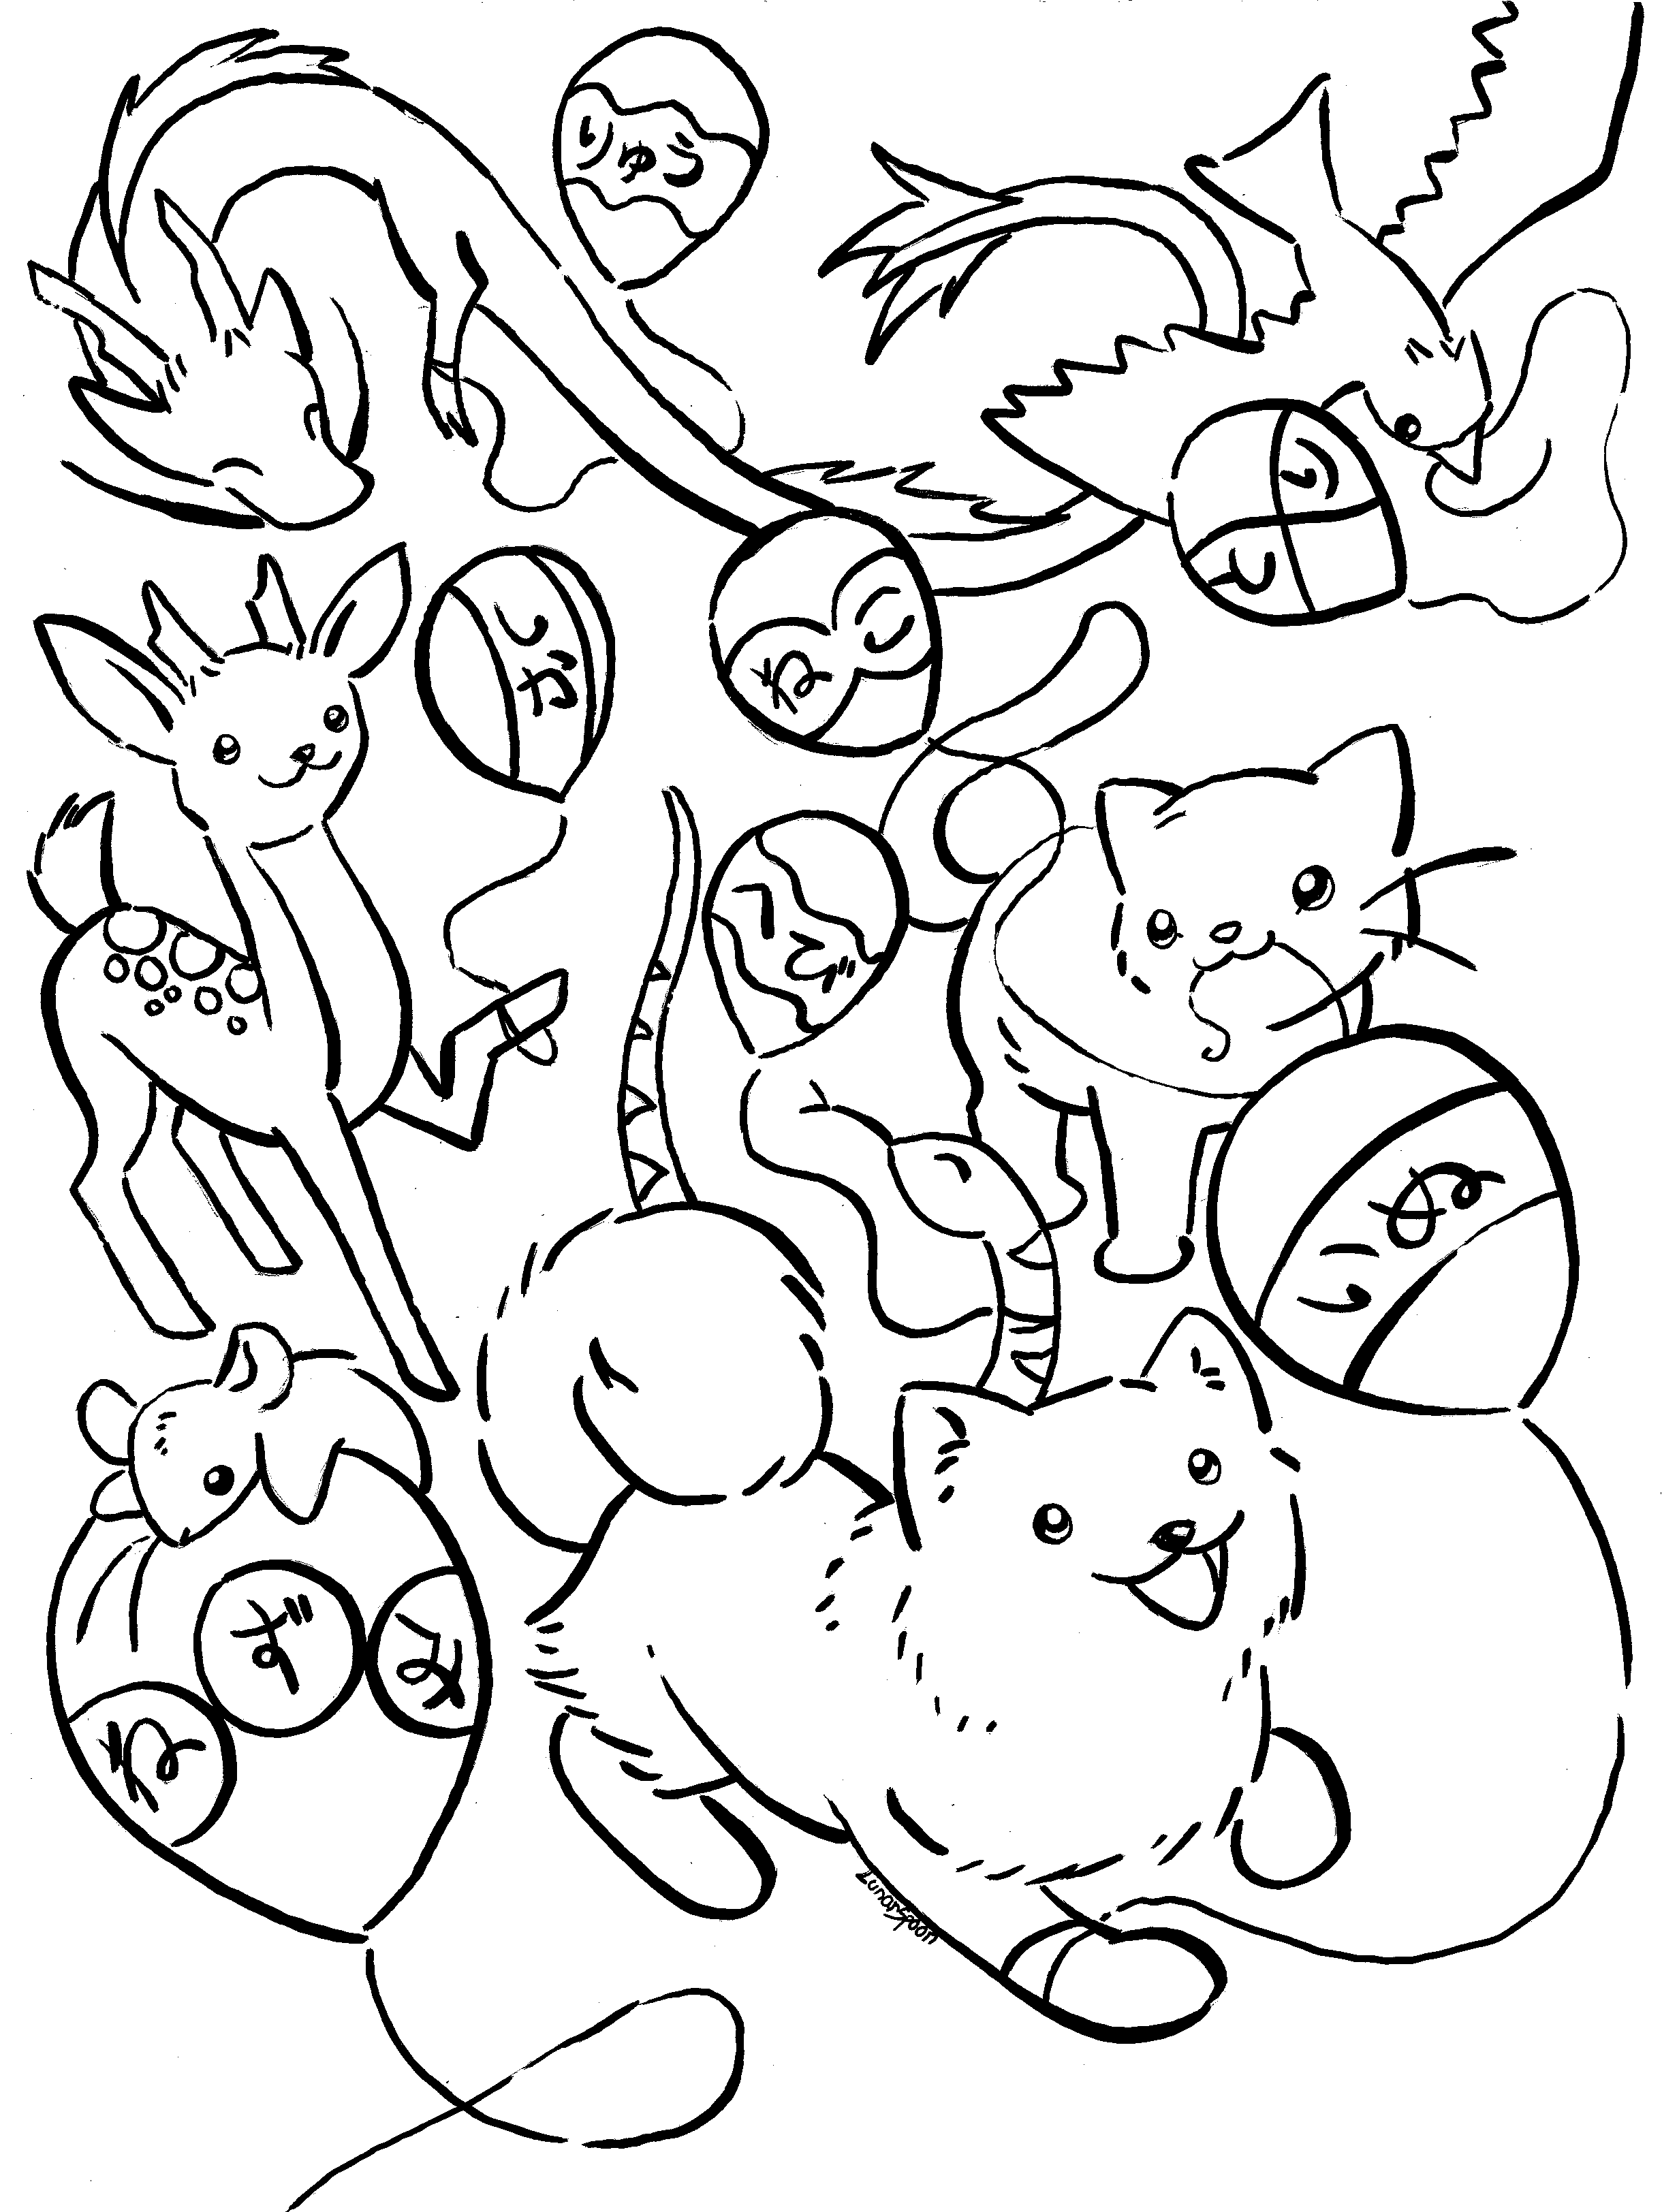 Japanese animals coloring page by lunarspoon on deviantart for Japanese art coloring pages